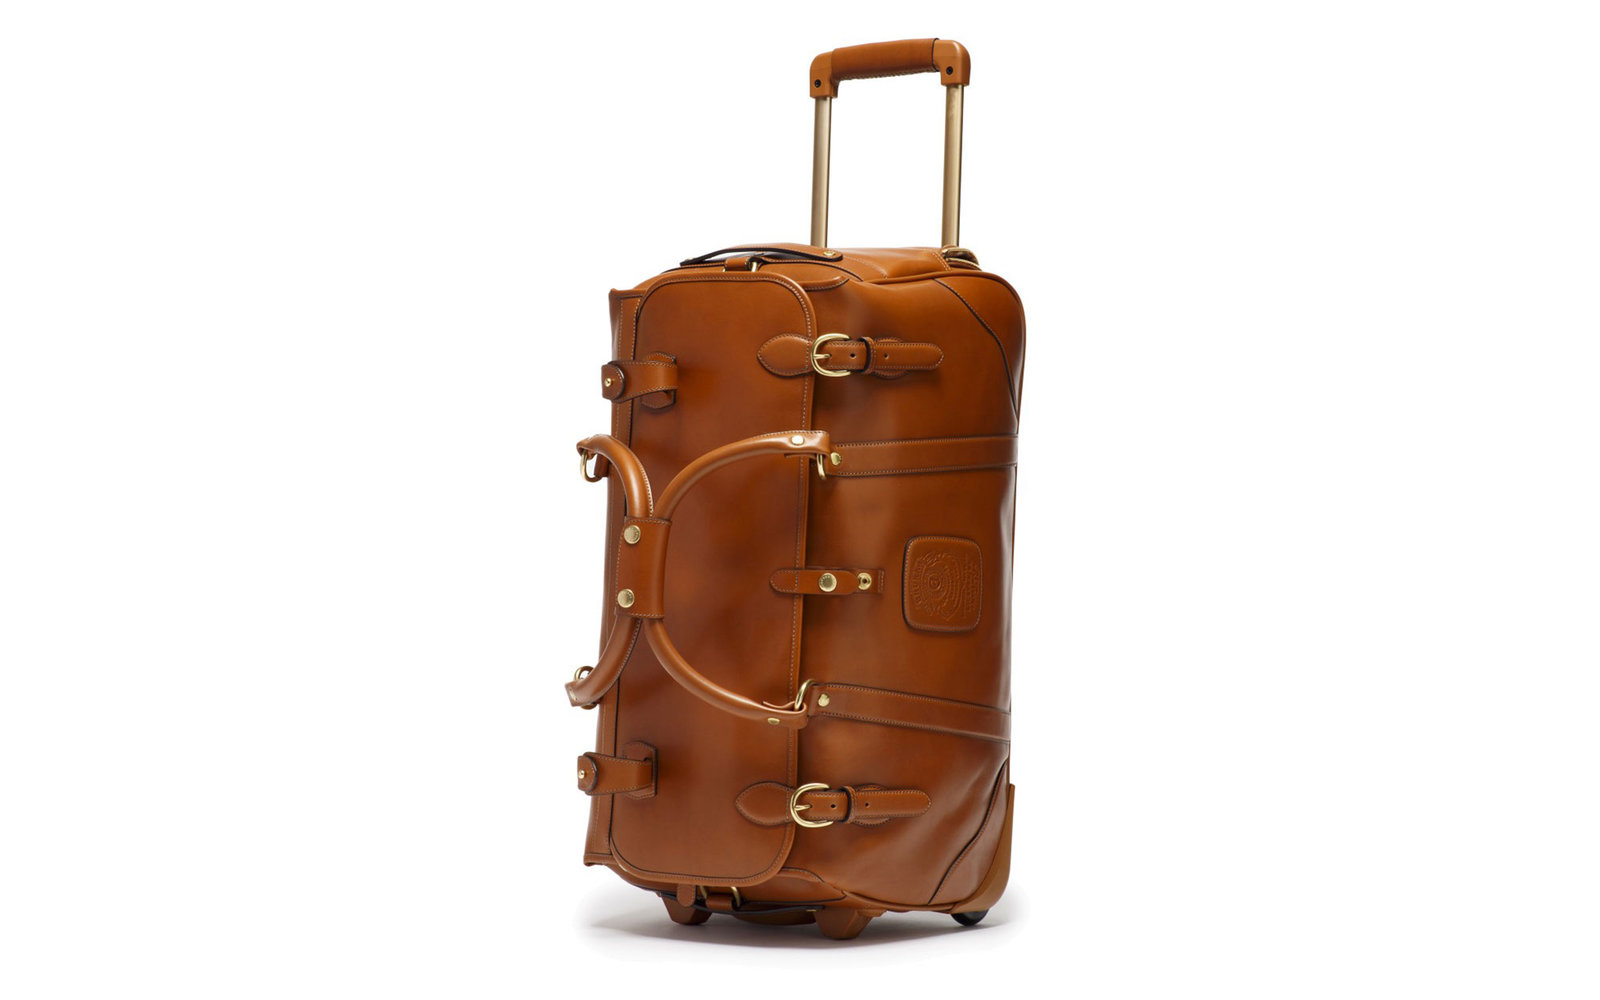 Best Travel Luggage Bag Brands